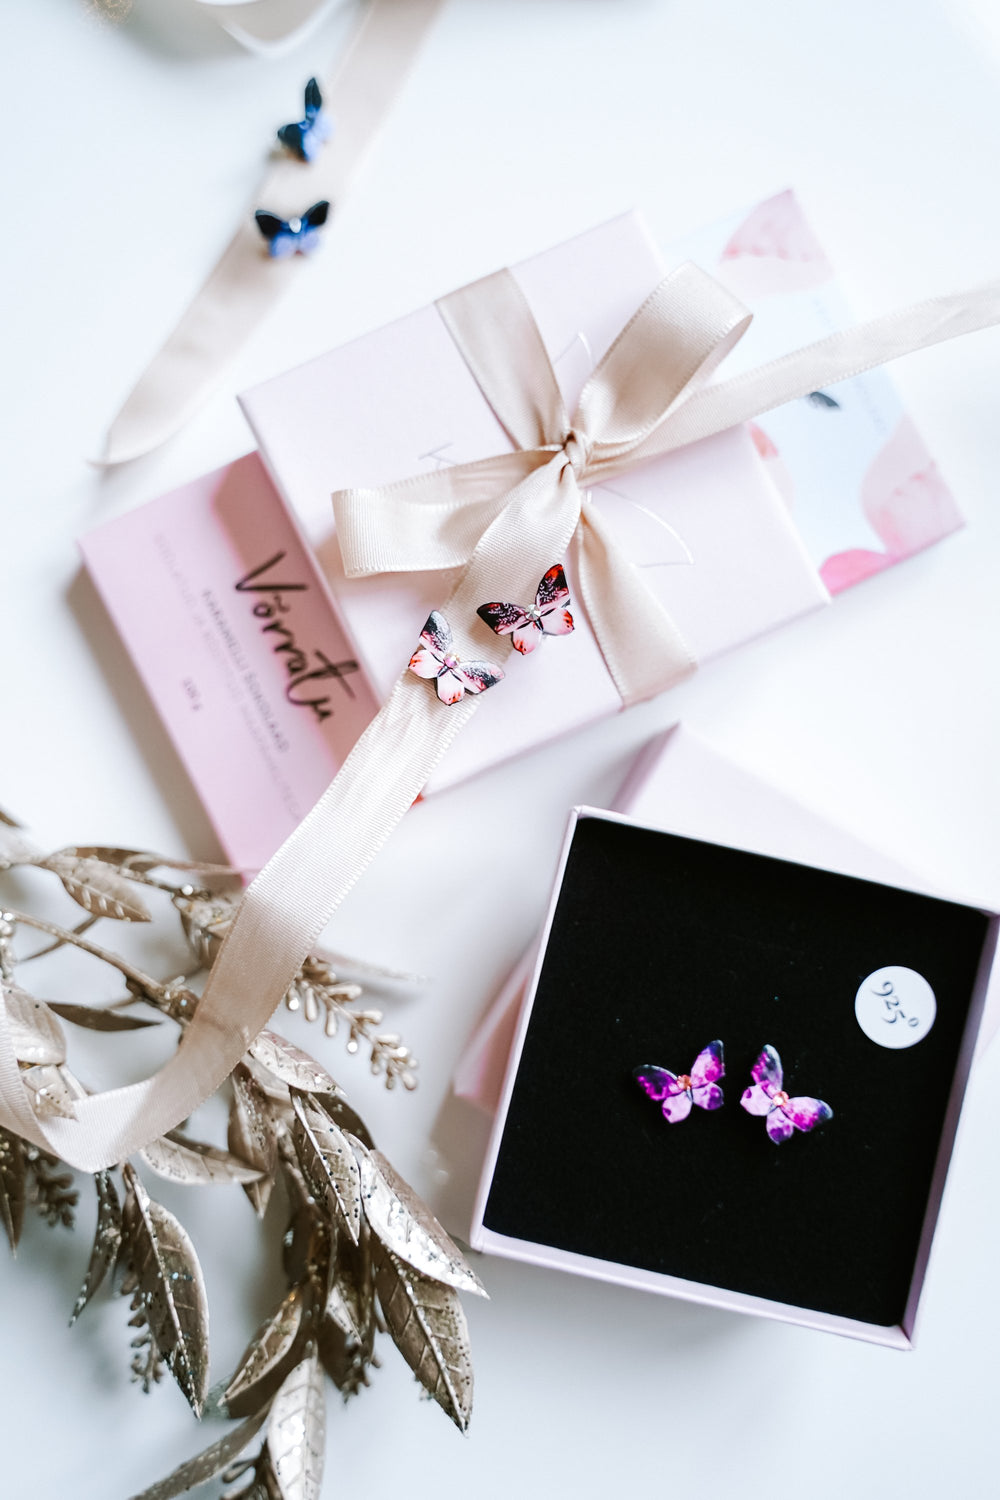 KUMA Butterfly Earrings x KUMA chocolate Gift Set